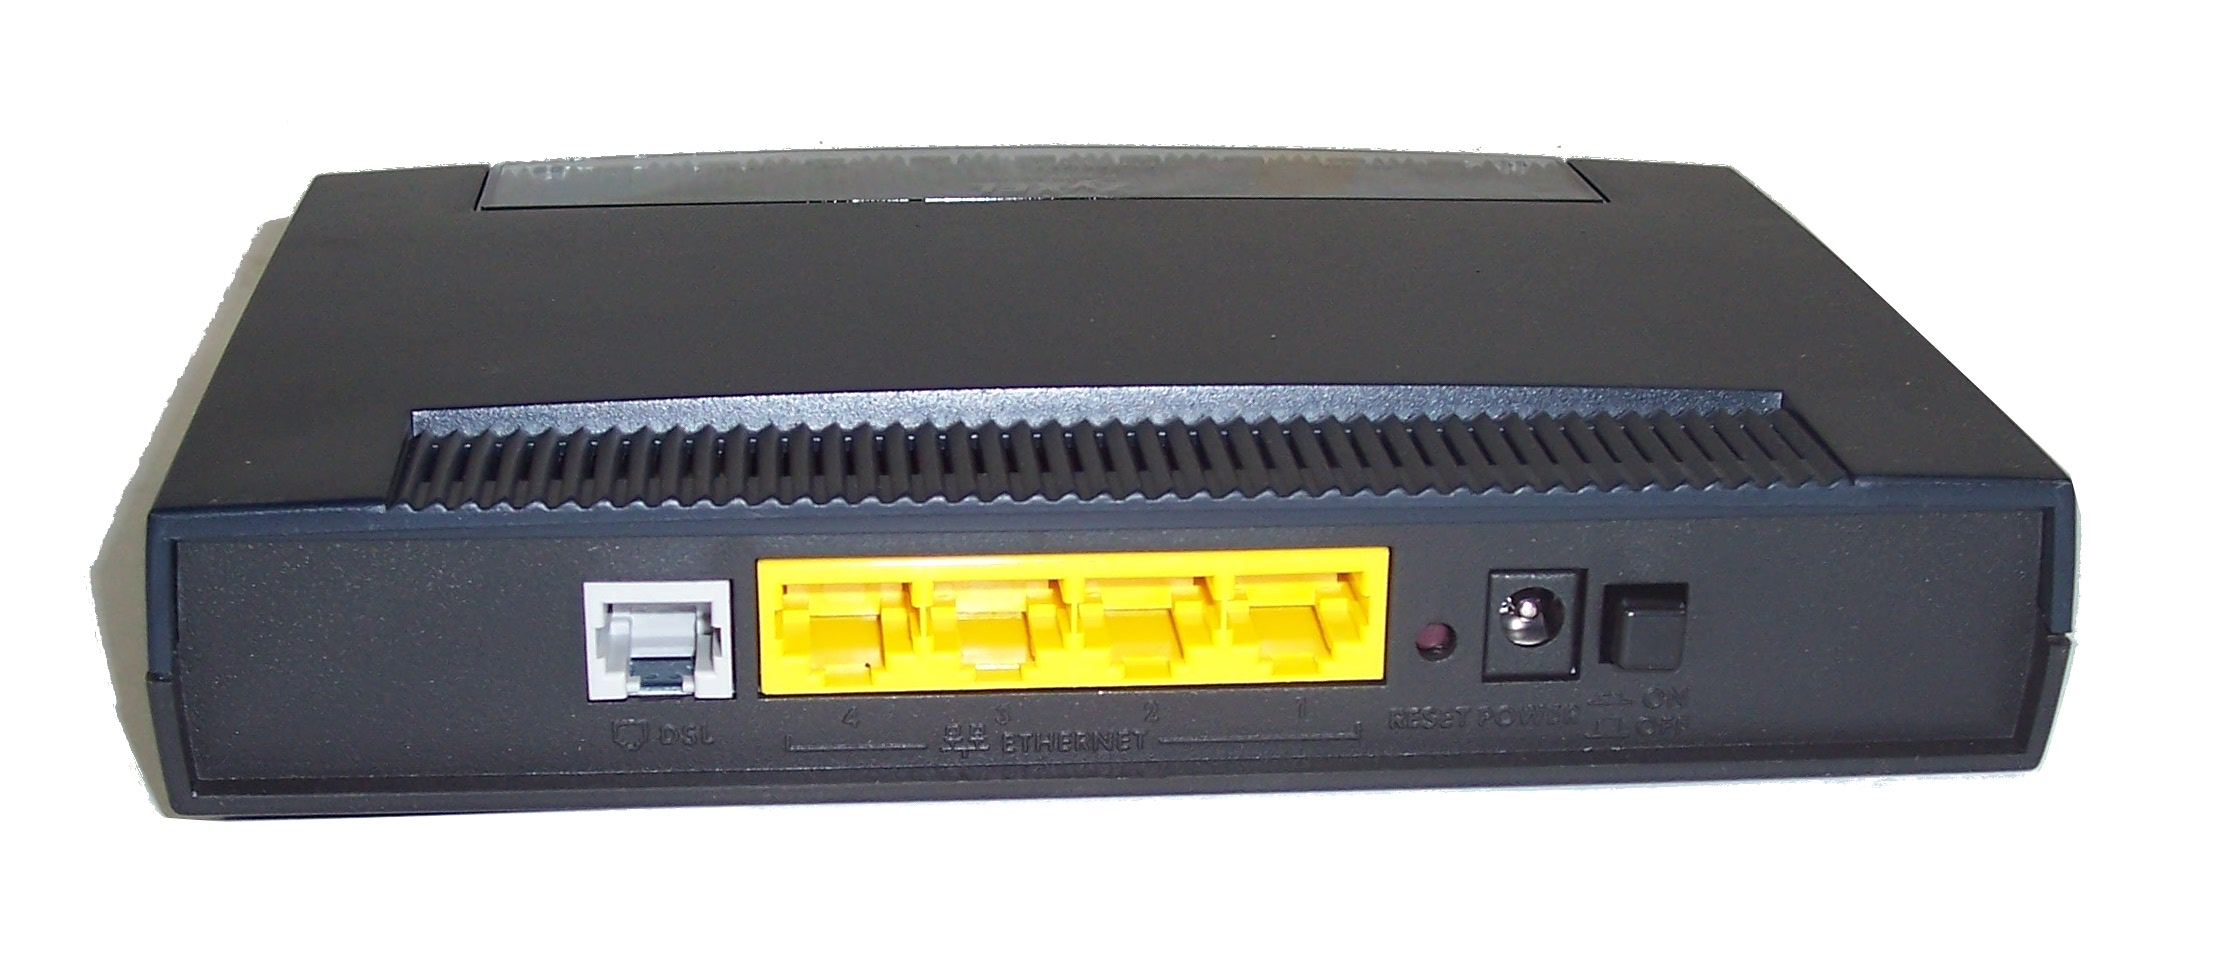 Configuring zyxel p-662h-d1 with 3cx phone system.